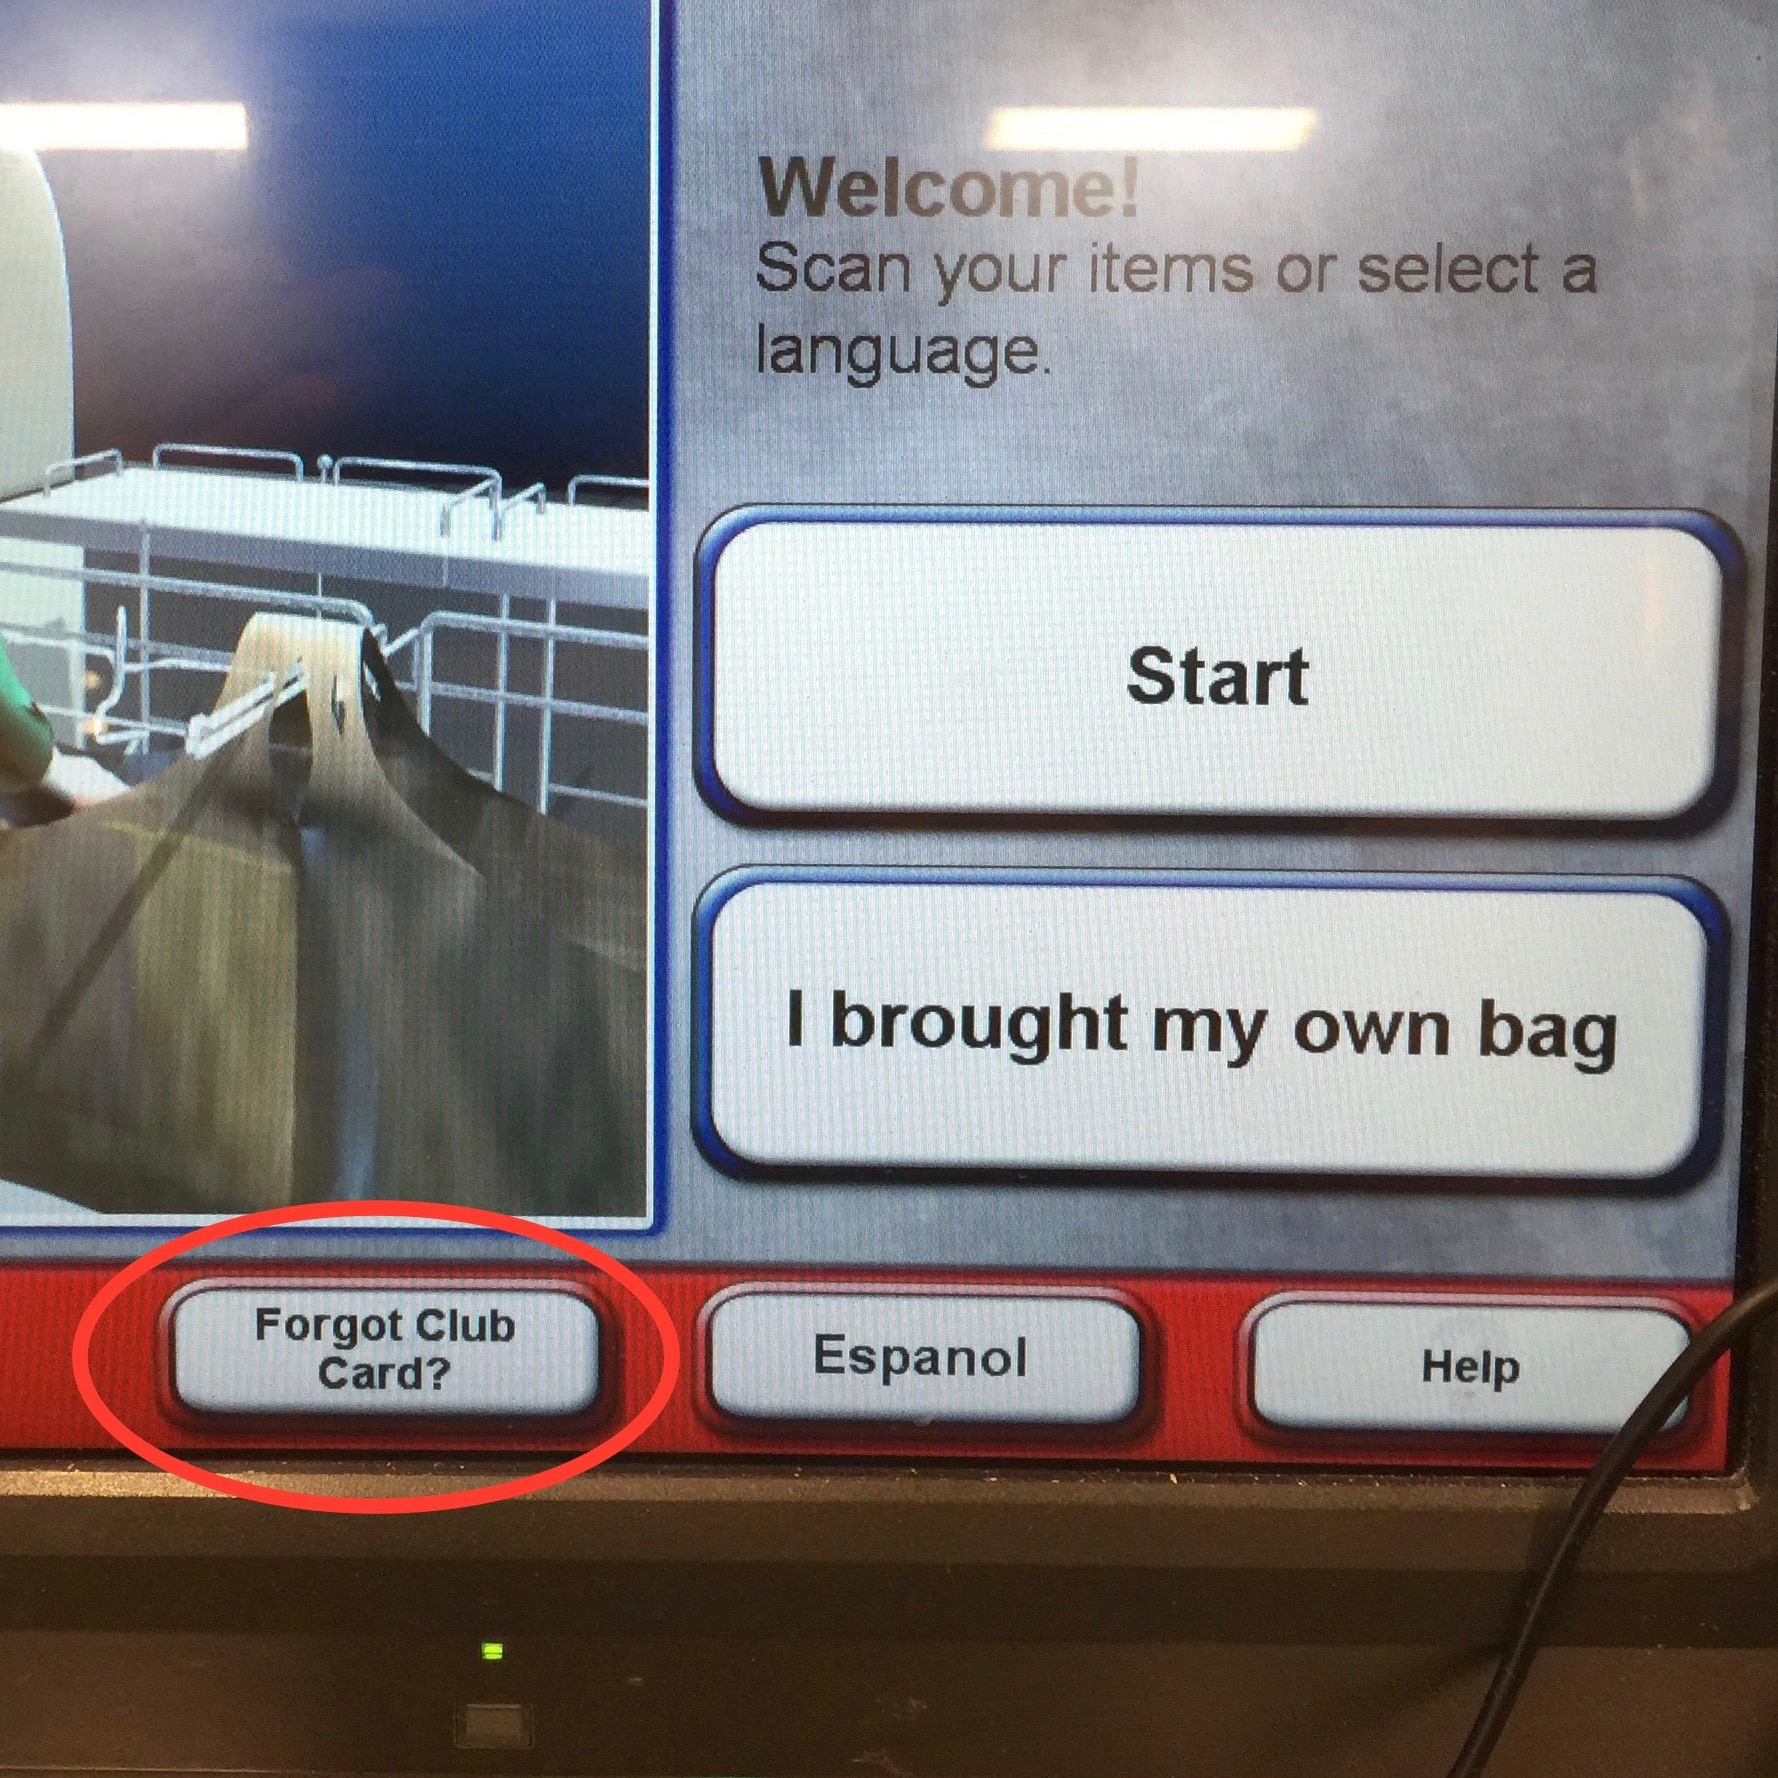 """What does """"Forgot Club Card?"""" mean, specifically? And are there other reasons someone might use this button?"""